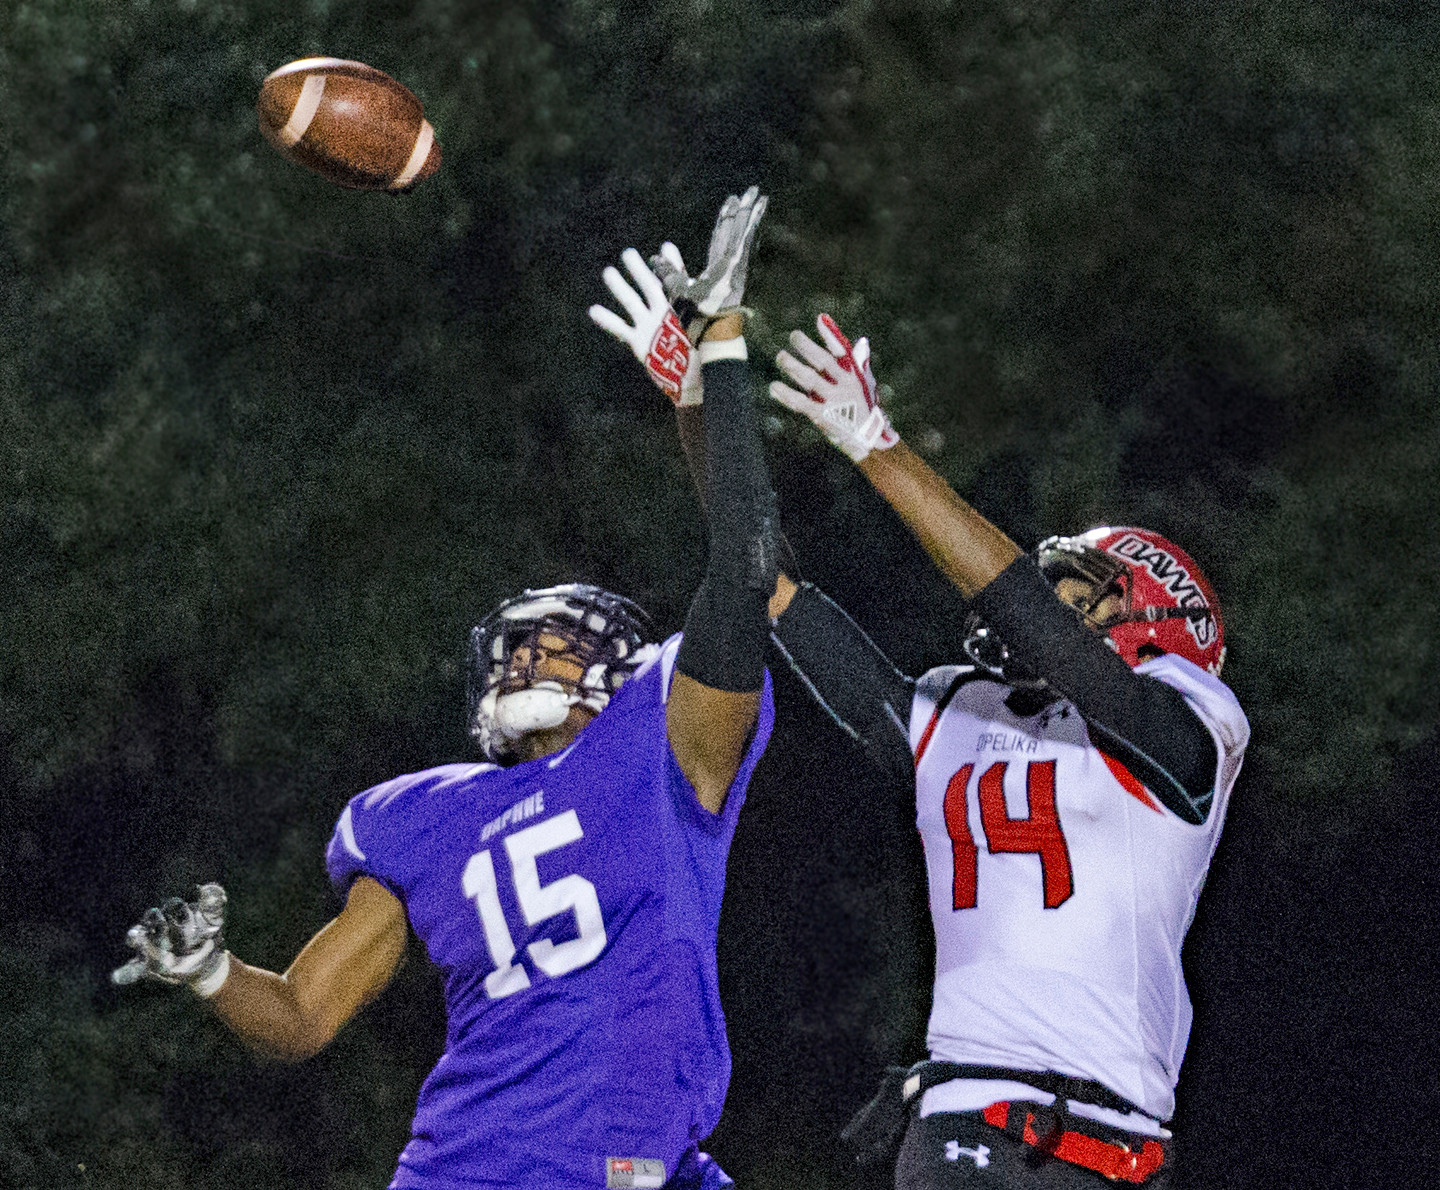 Trojan safety Hamilton Baker (15) breaks up a pass intended for Opelika's Jorden Heard (14).